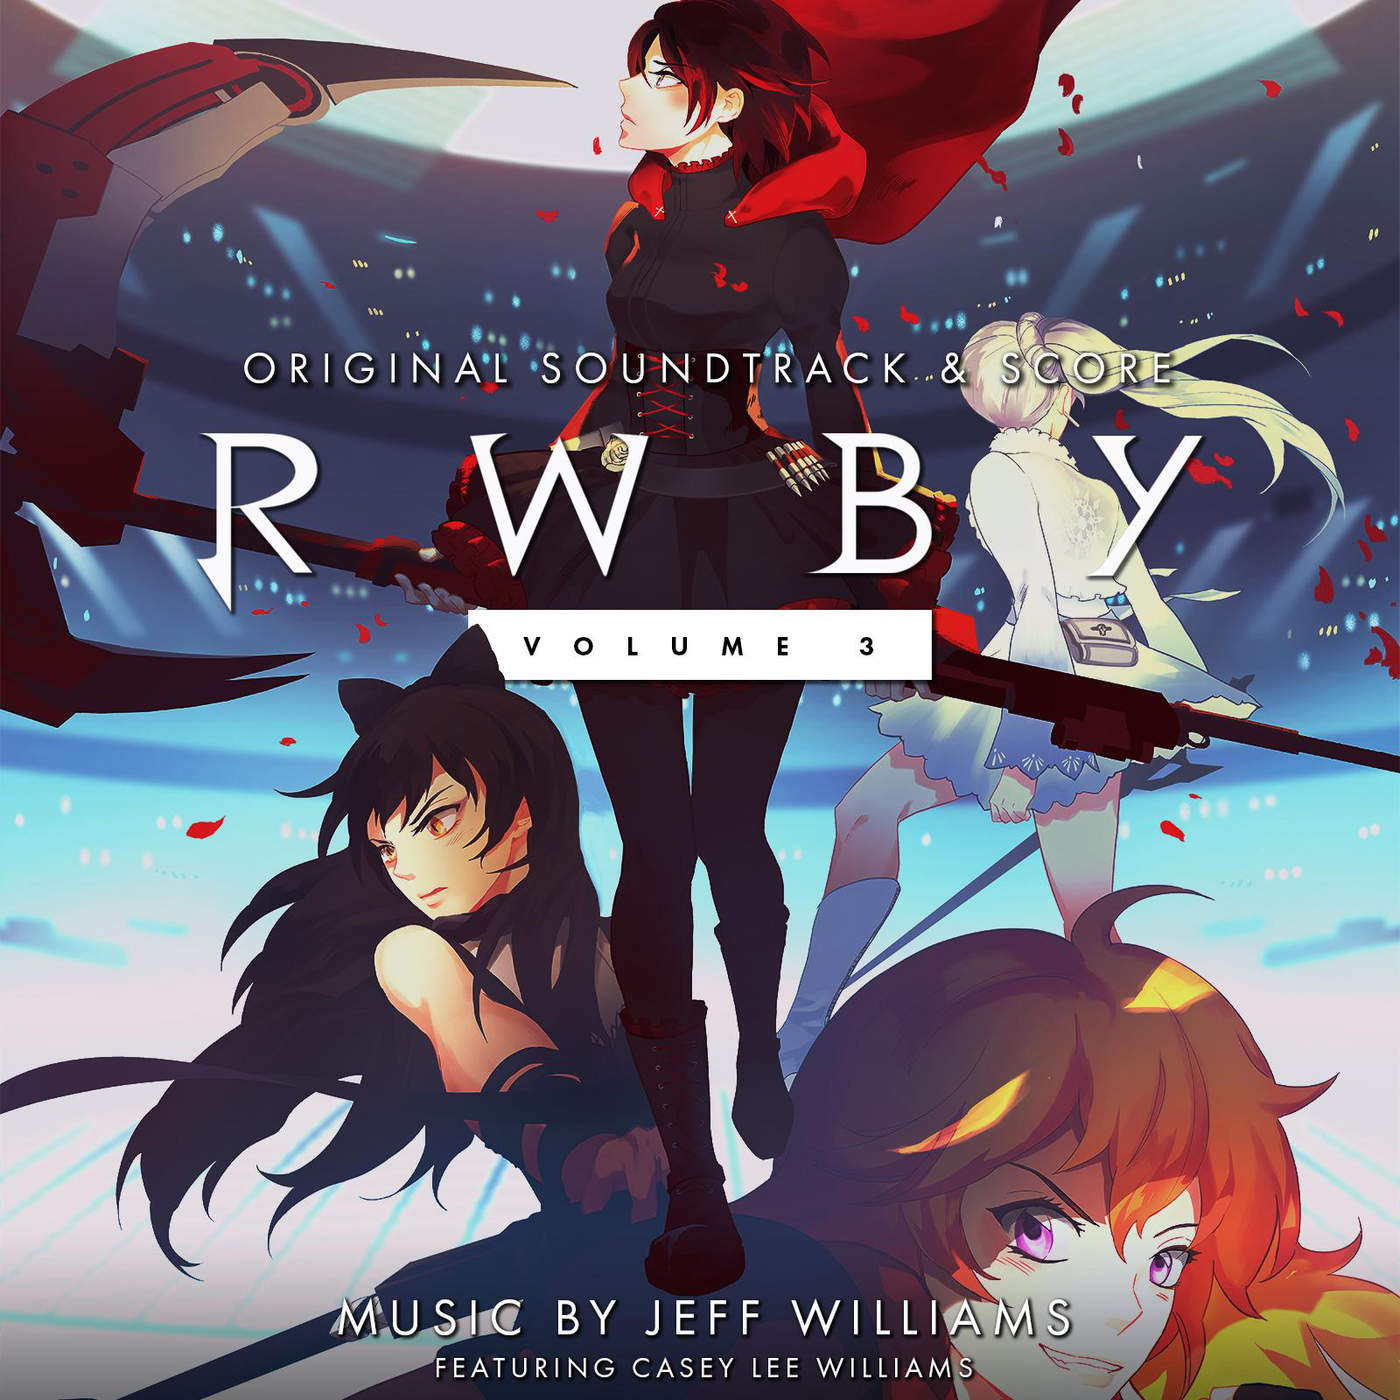 RWBY  Volume 3 Soundtrack on emerald rwby vol 4